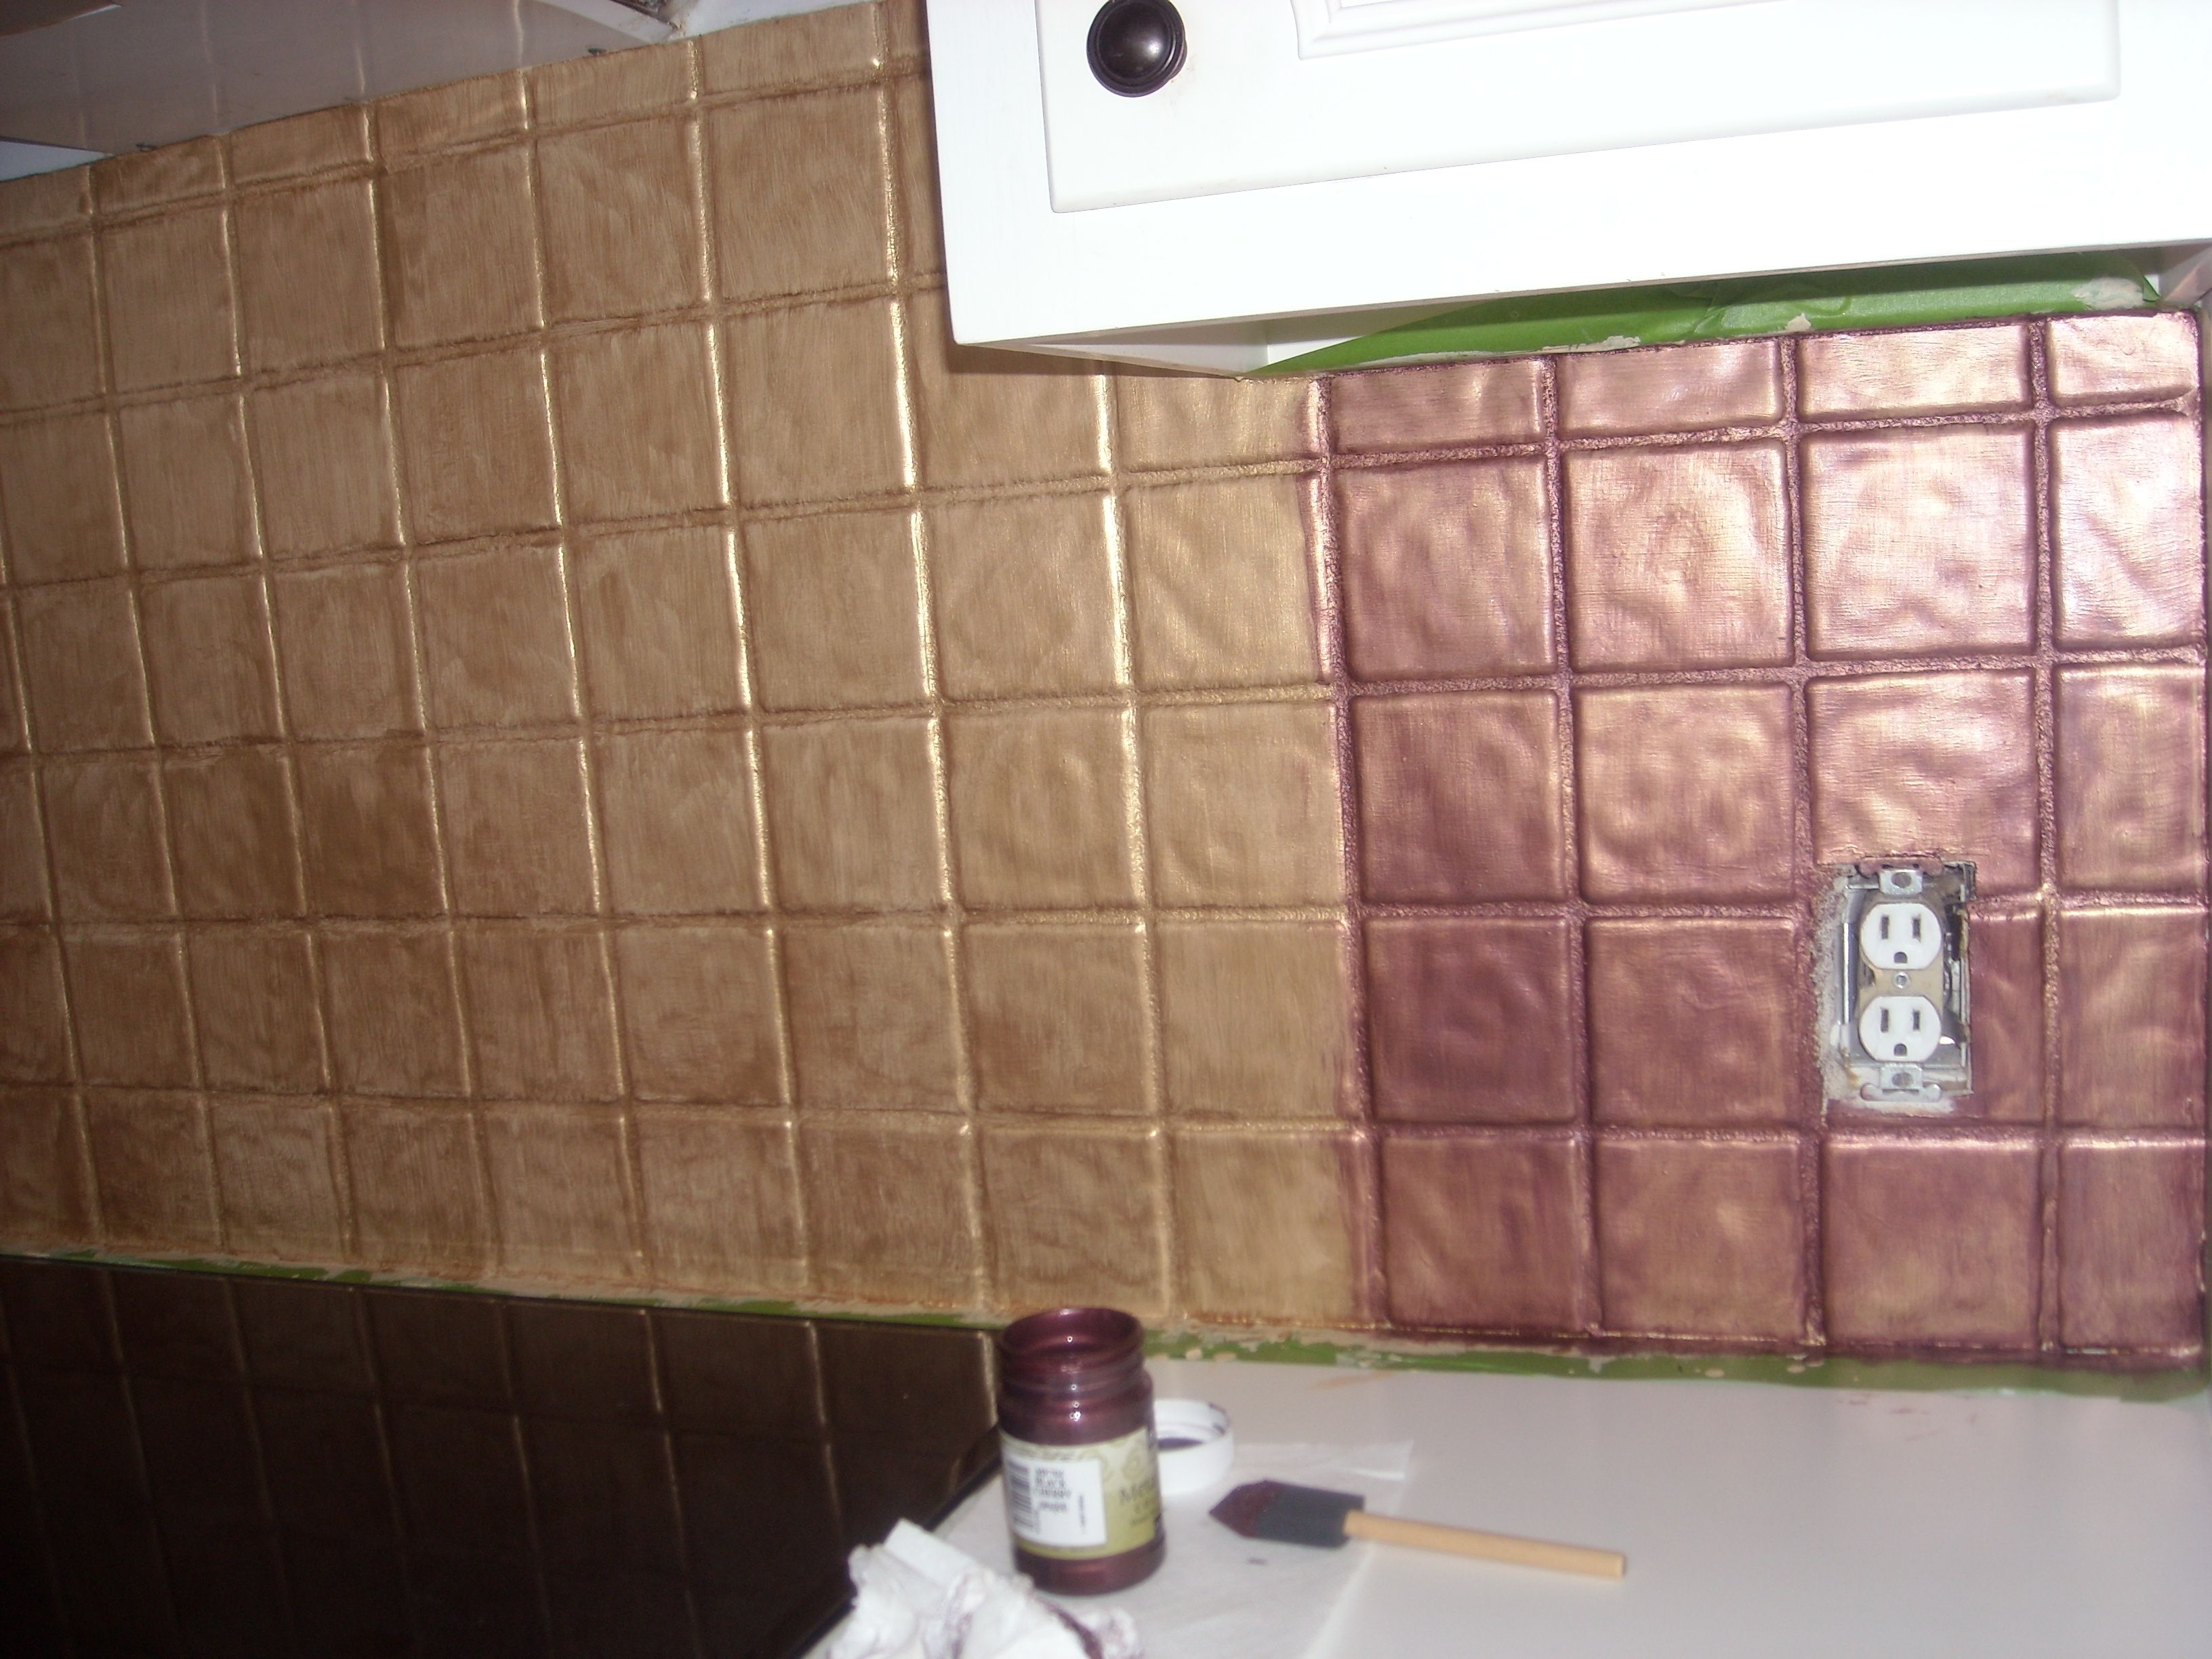 Kitchen Tiles Painted Over yes!!! you can paint over tile!! i turned my backsplash kitchen